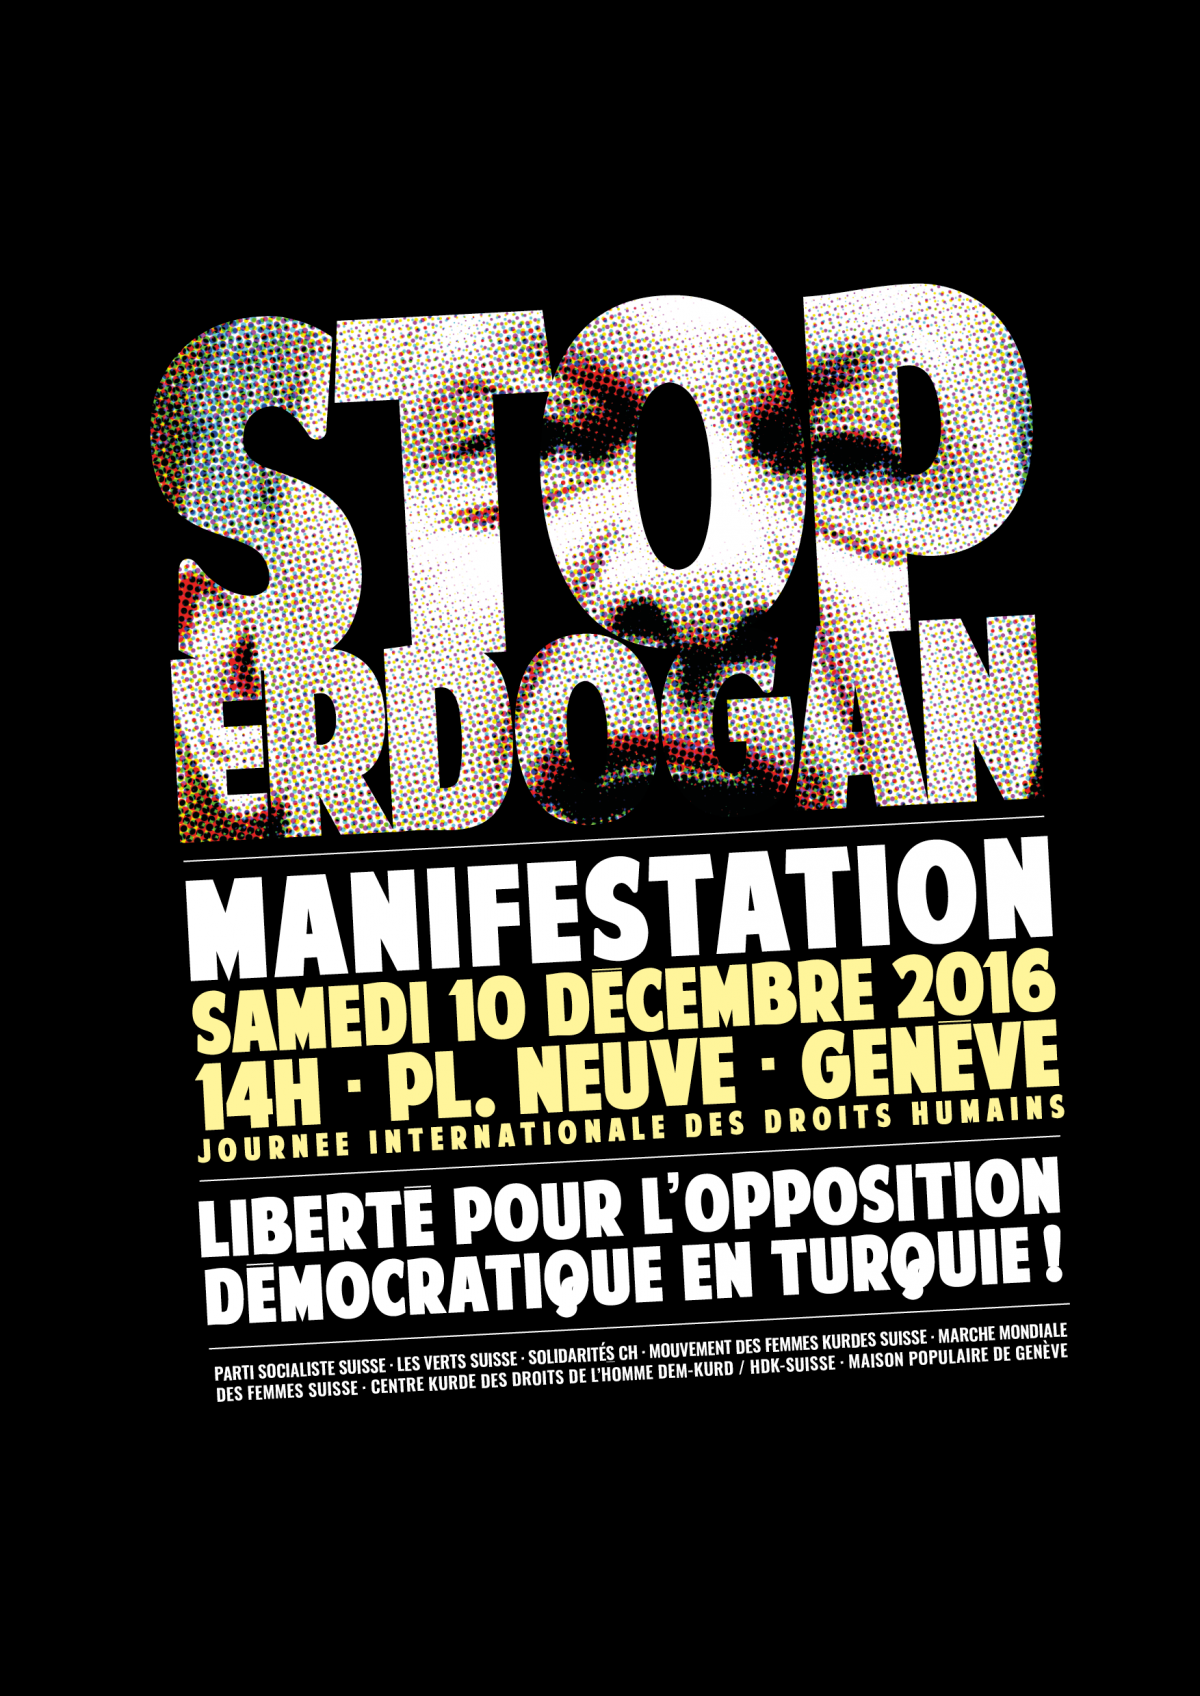 2016-12-10-manif-Turquie-A3.png